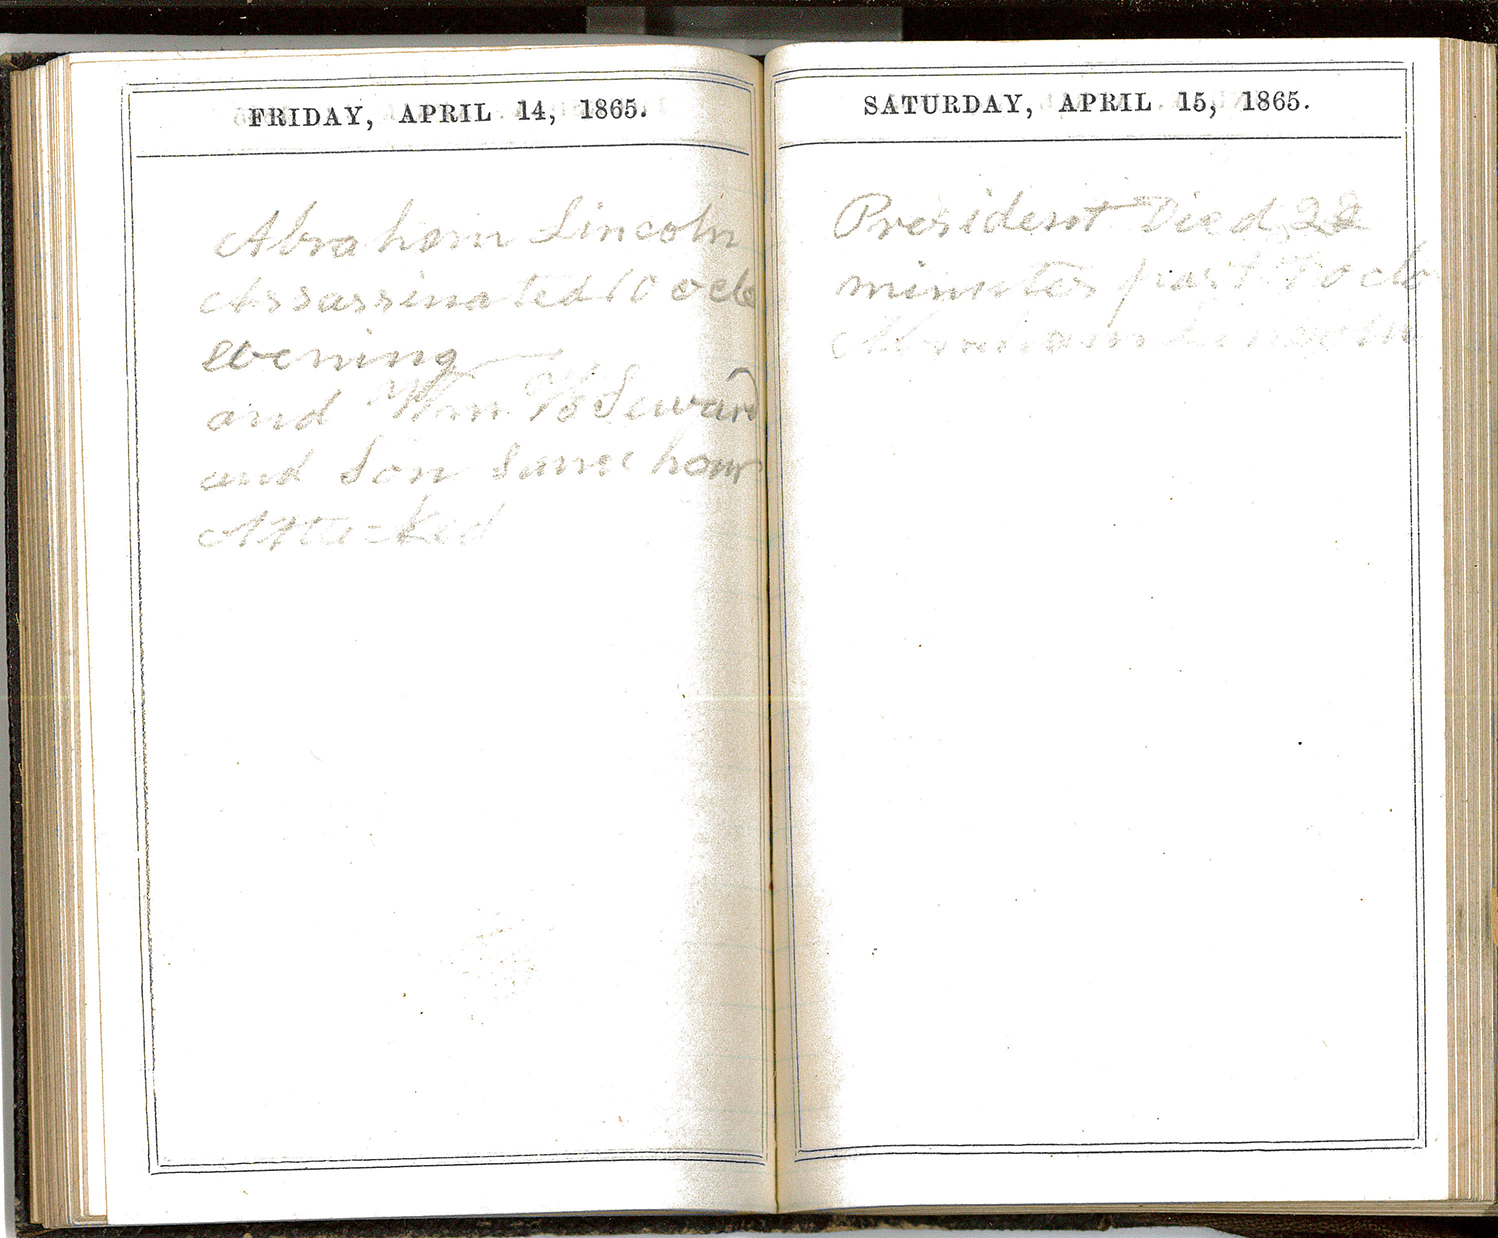 Journal – Friday April 14, 1865, Saturday April 16